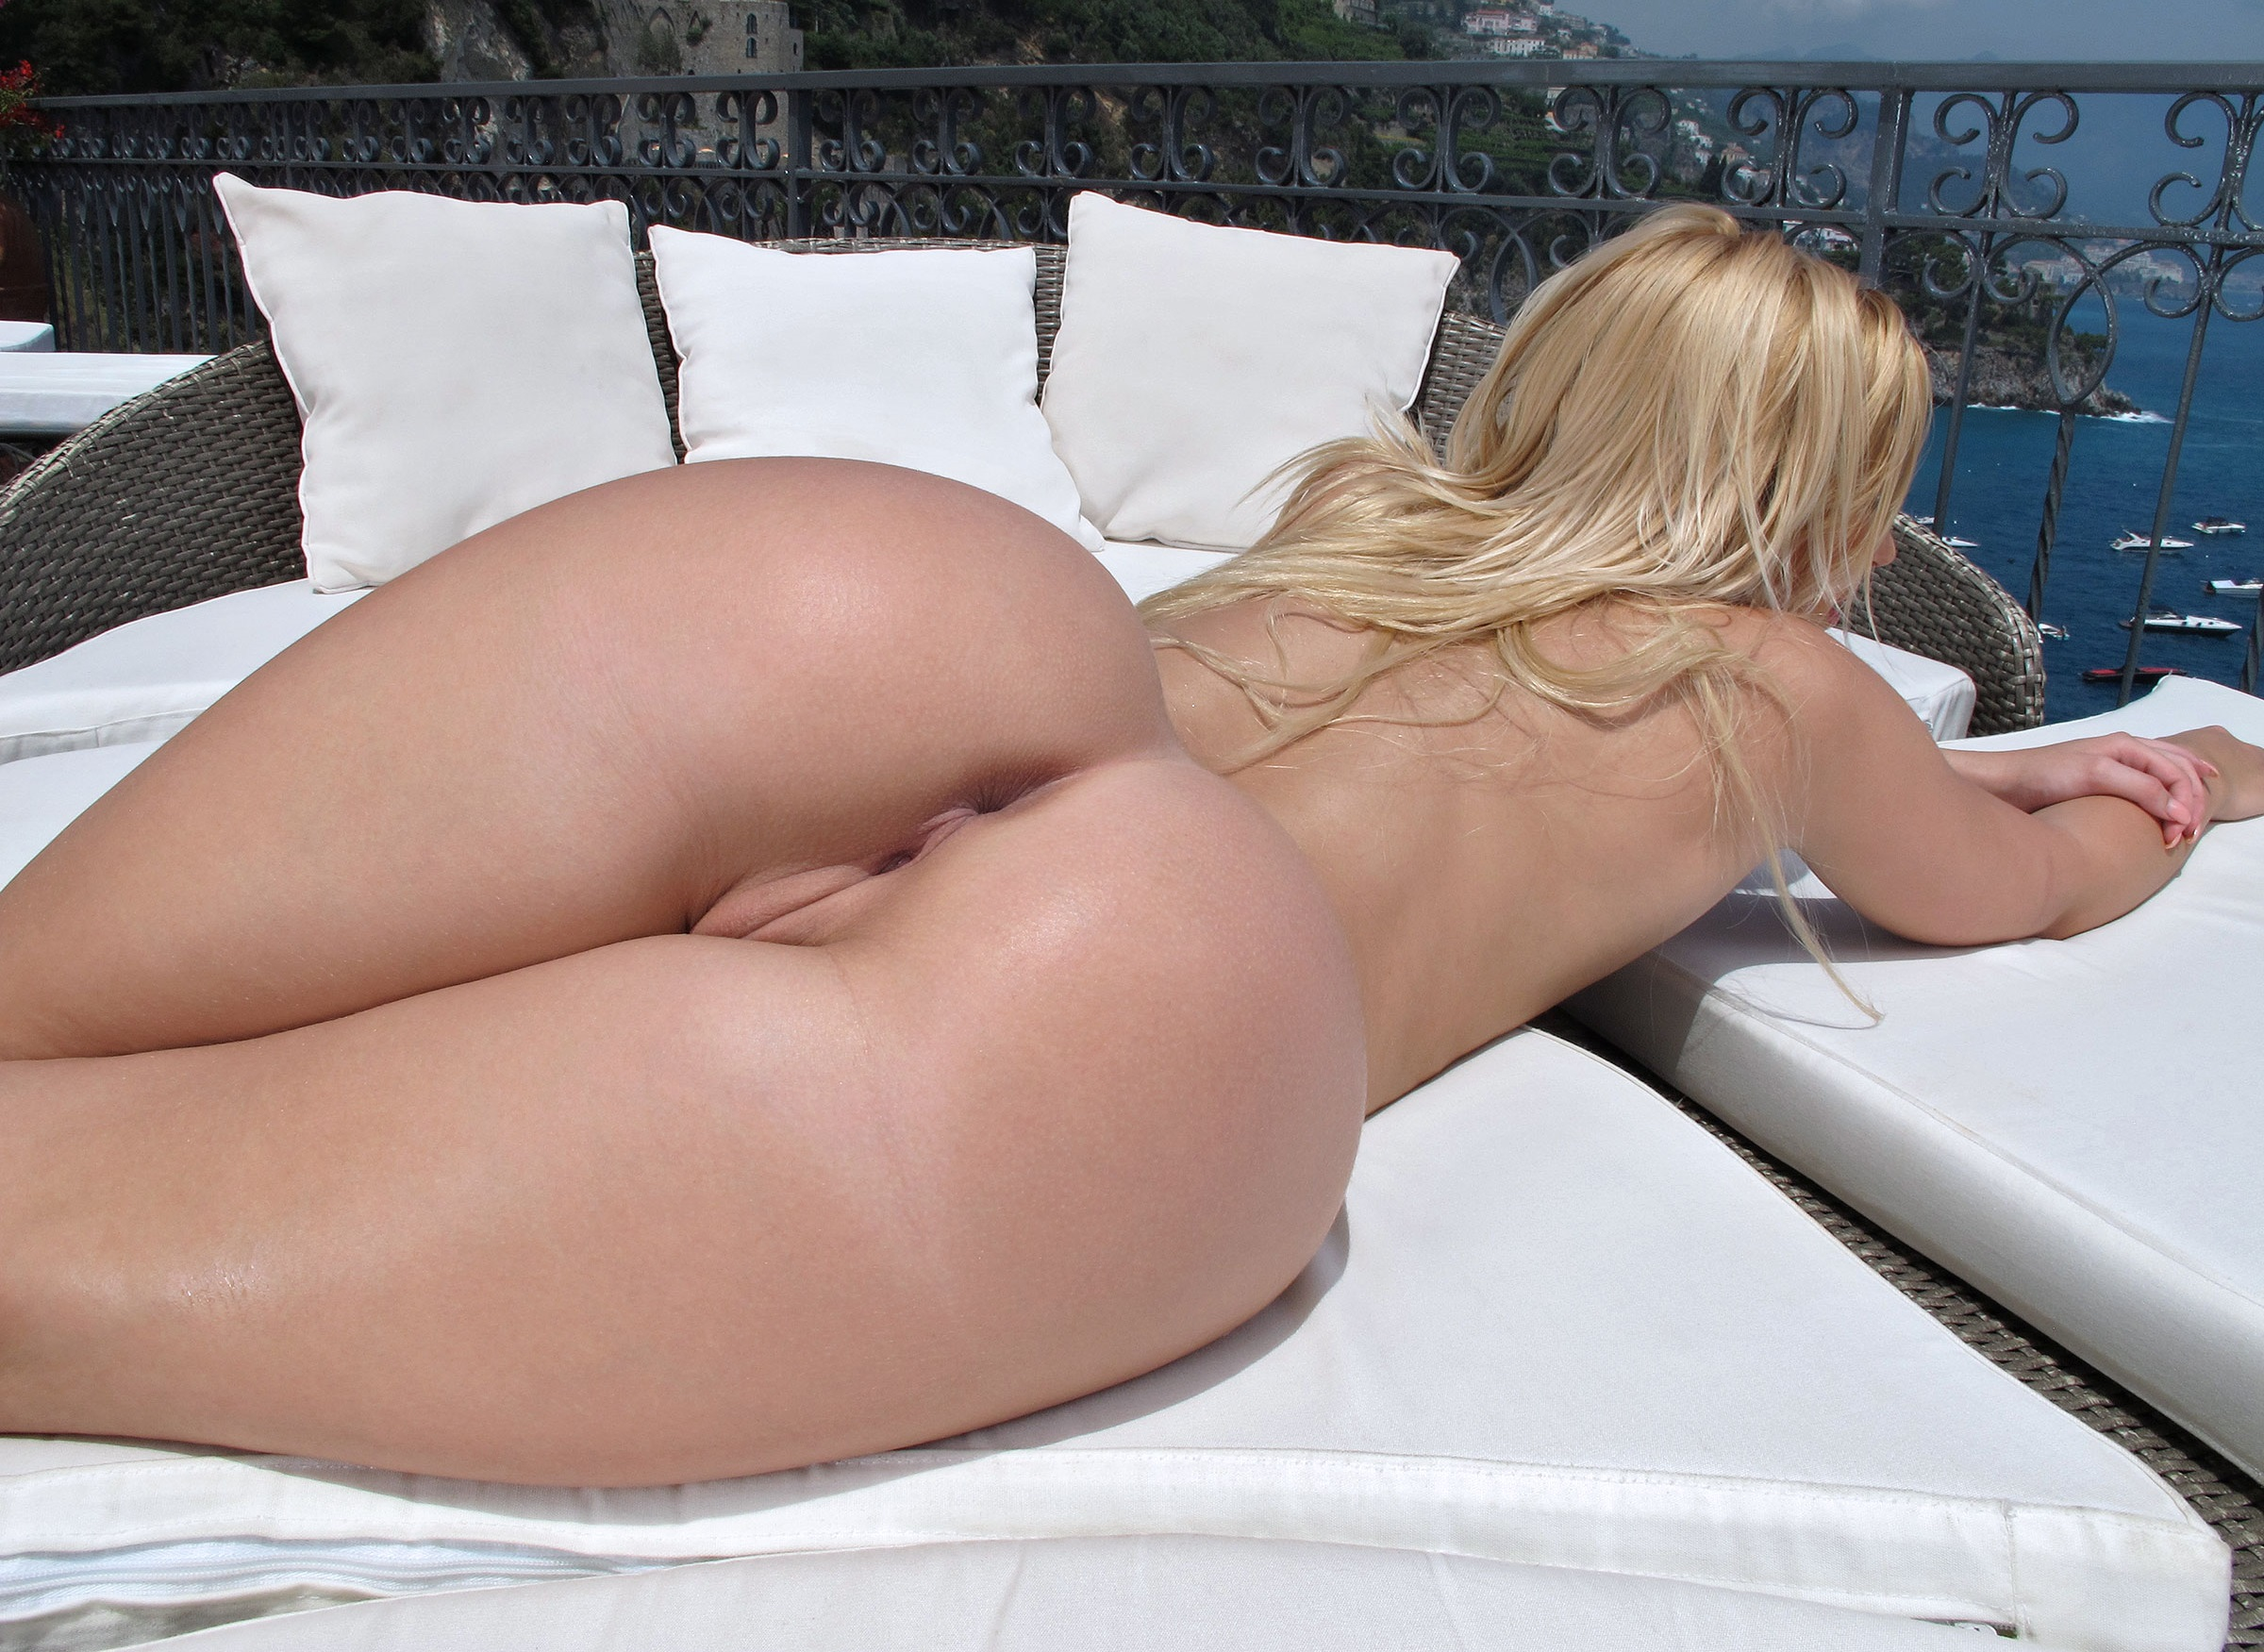 Tracy ross sexy ass pics 2